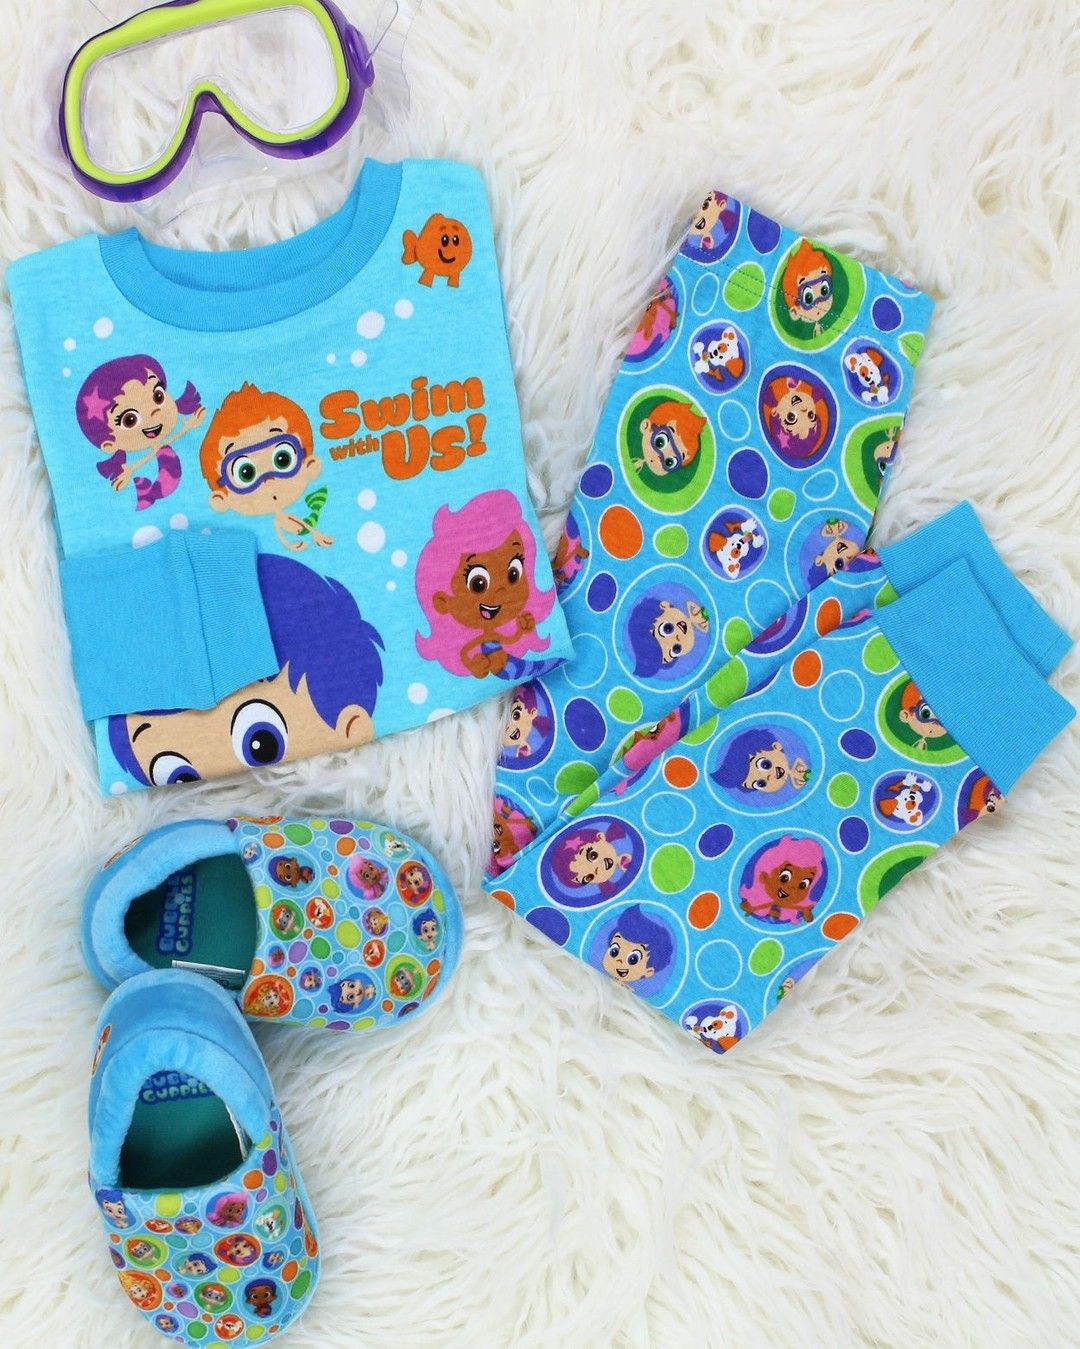 4ae69ff719  yankeetoybox posted to Instagram  These adorable pajamas and slippers  feature all your favorite Bubble